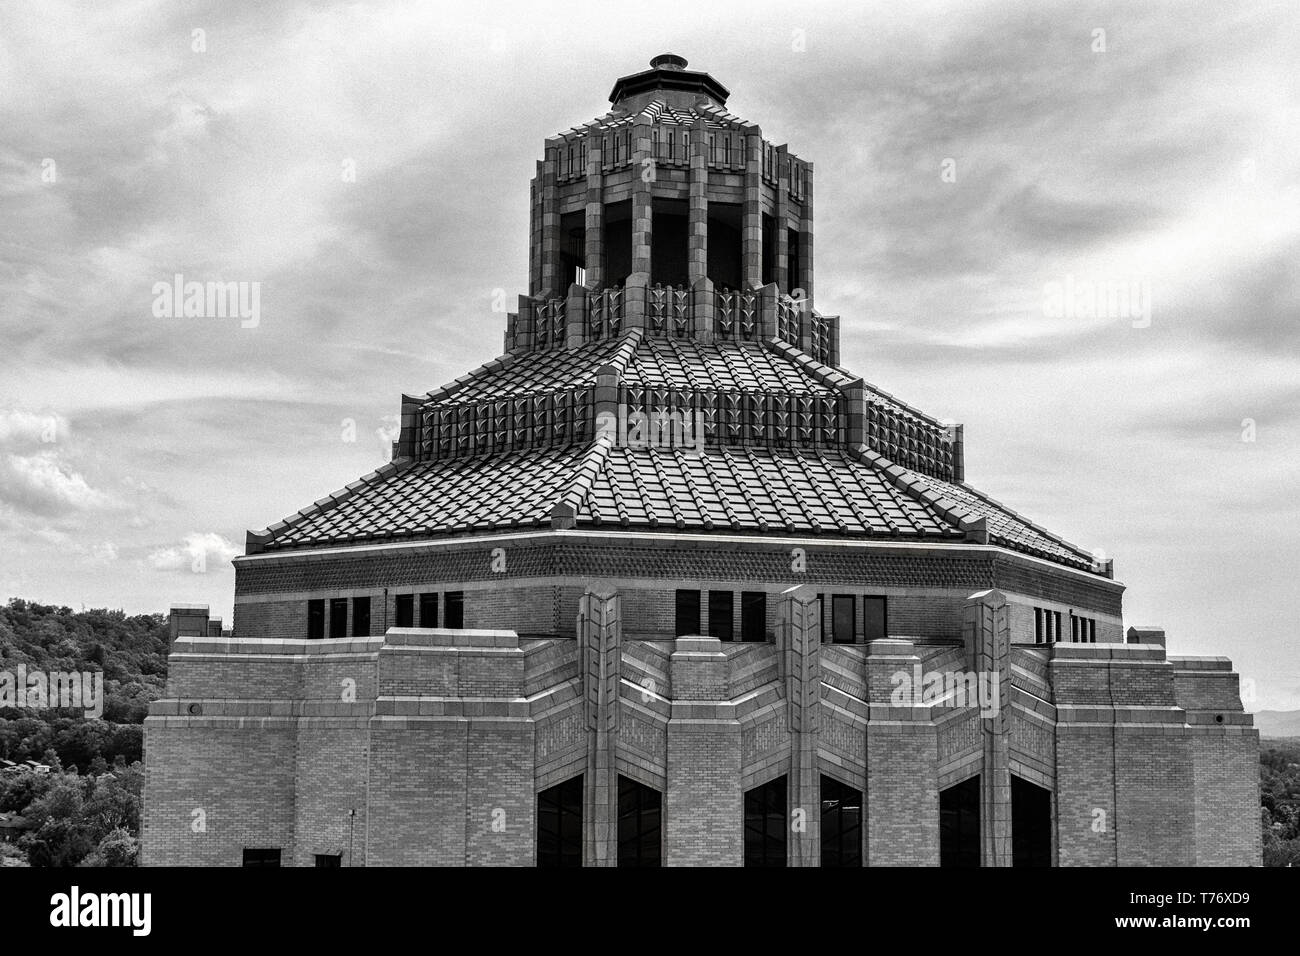 The octagonal roof and cupola of the City Building in Asheville, NC, USA Stock Photo